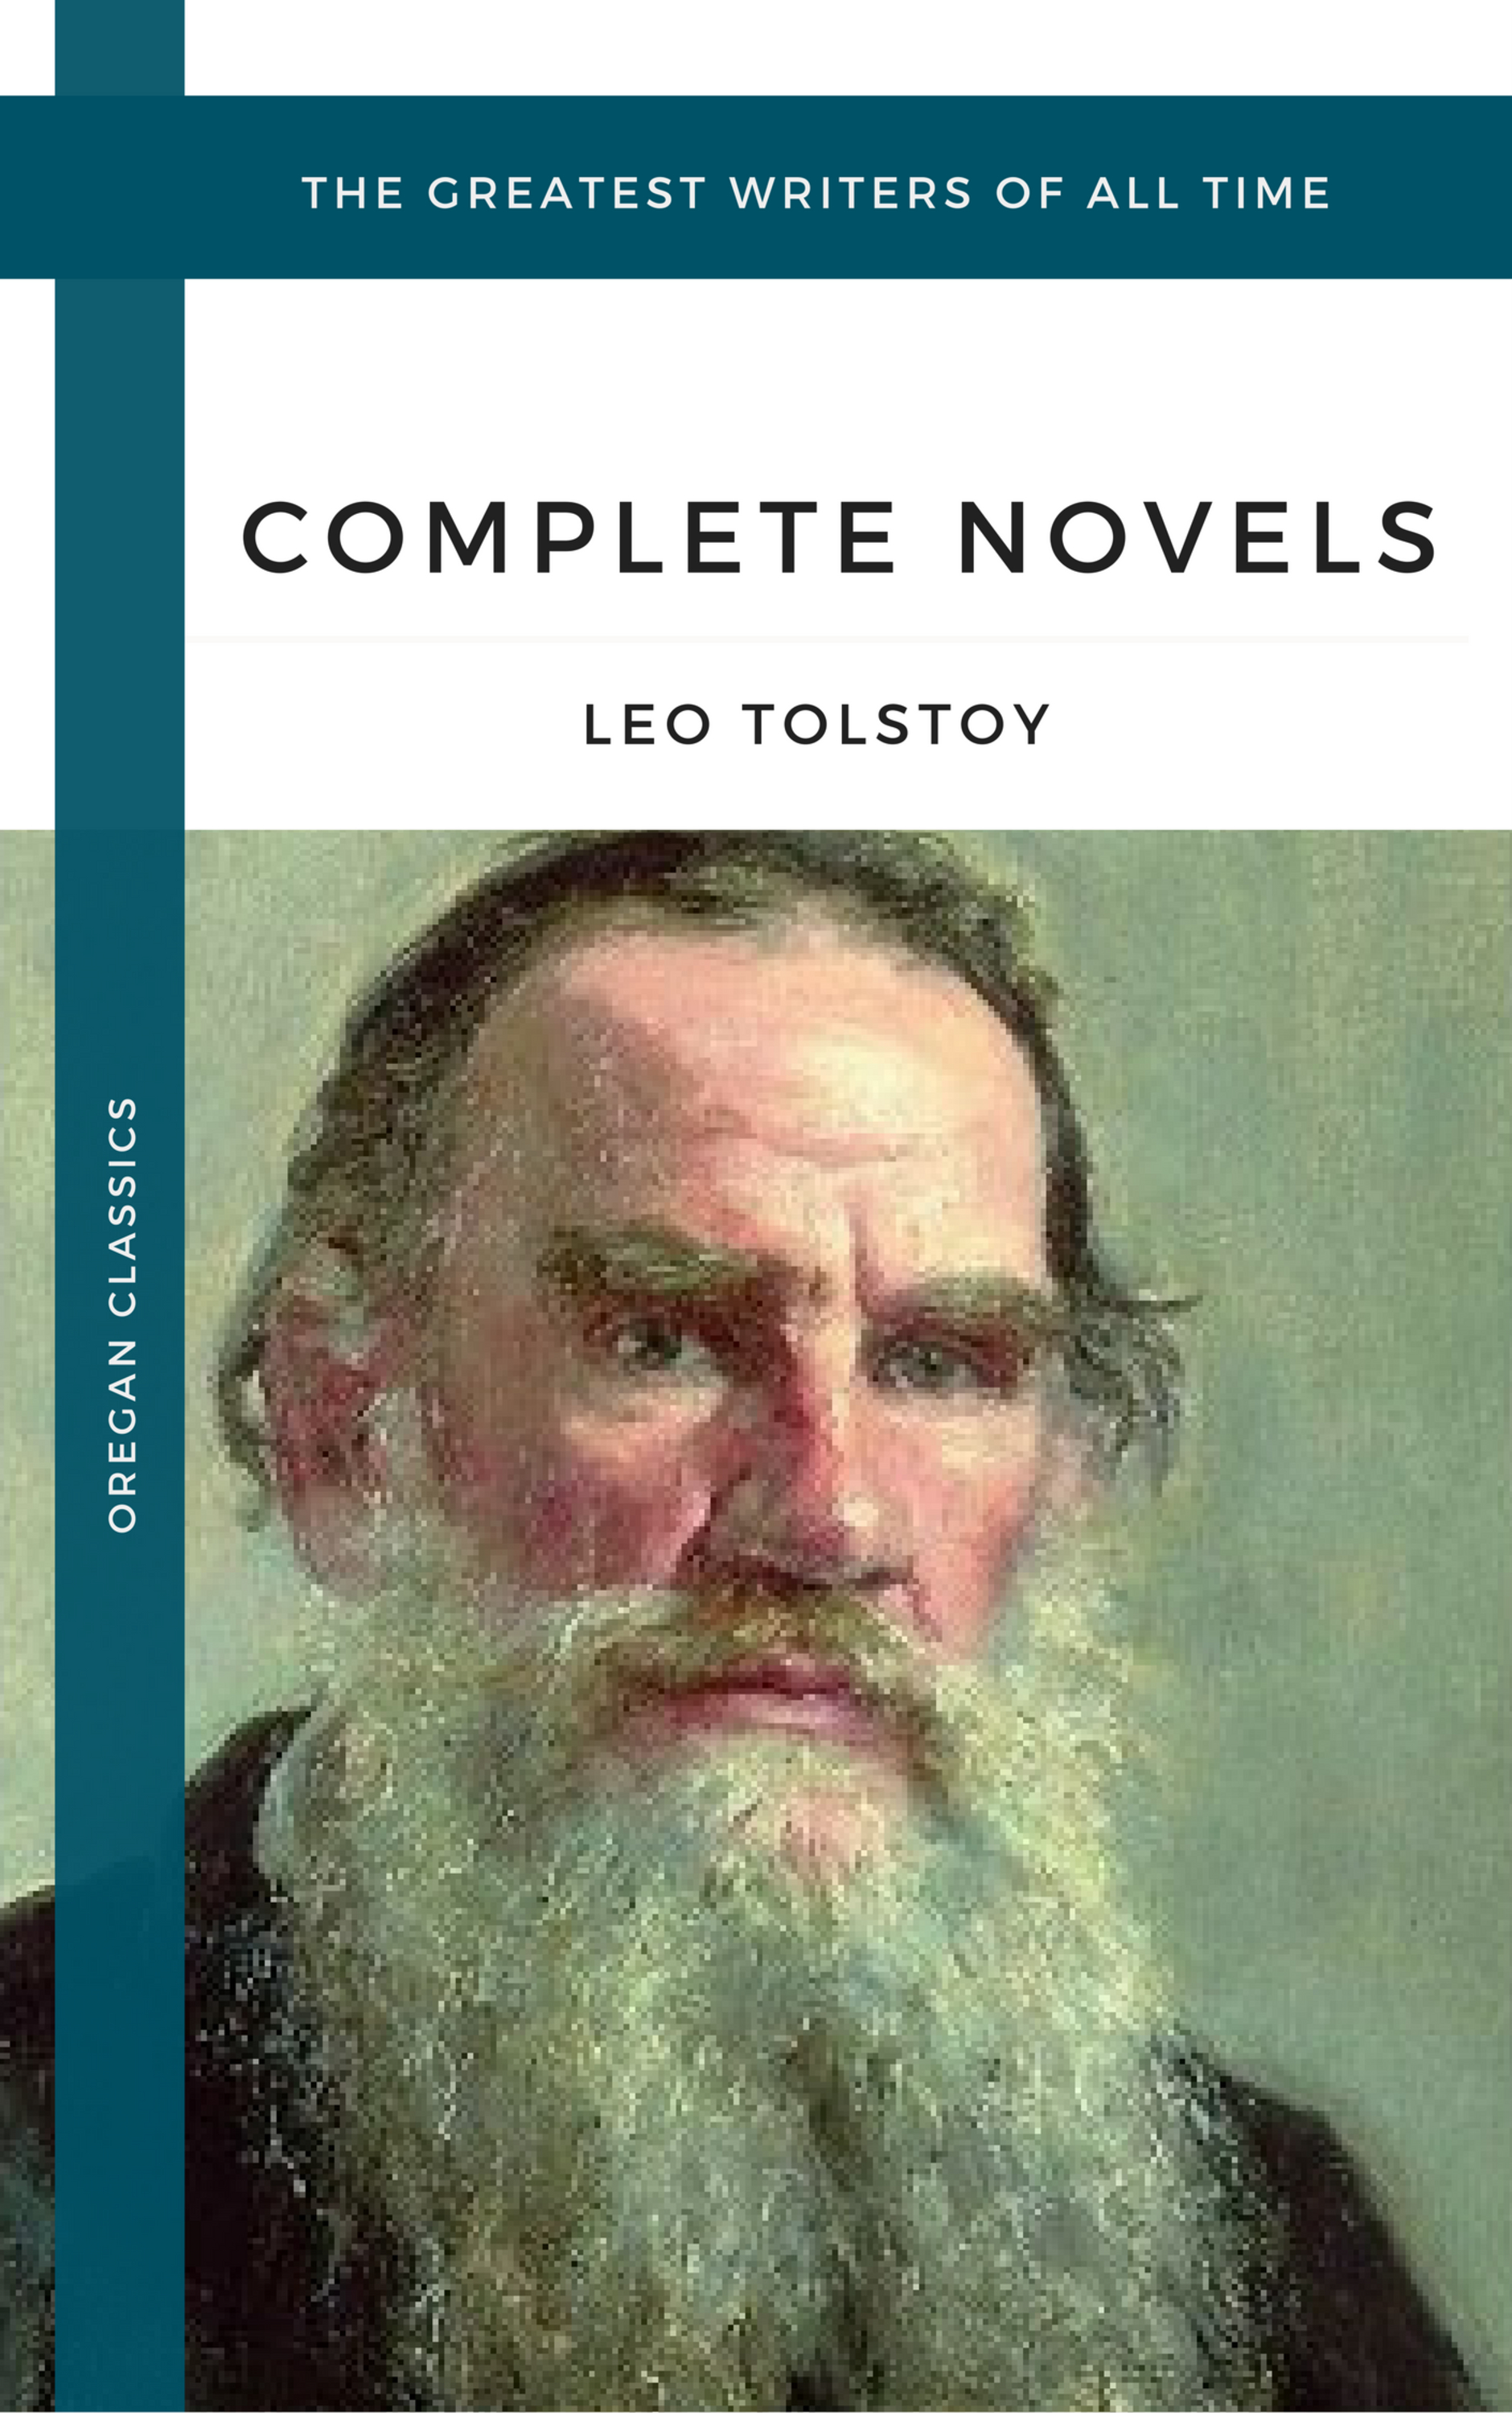 Leo Tolstoy Tolstoy, Leo: The Complete Novels and Novellas (Oregan Classics) (The Greatest Writers of All Time) leo tolstoy resurrection volume 2